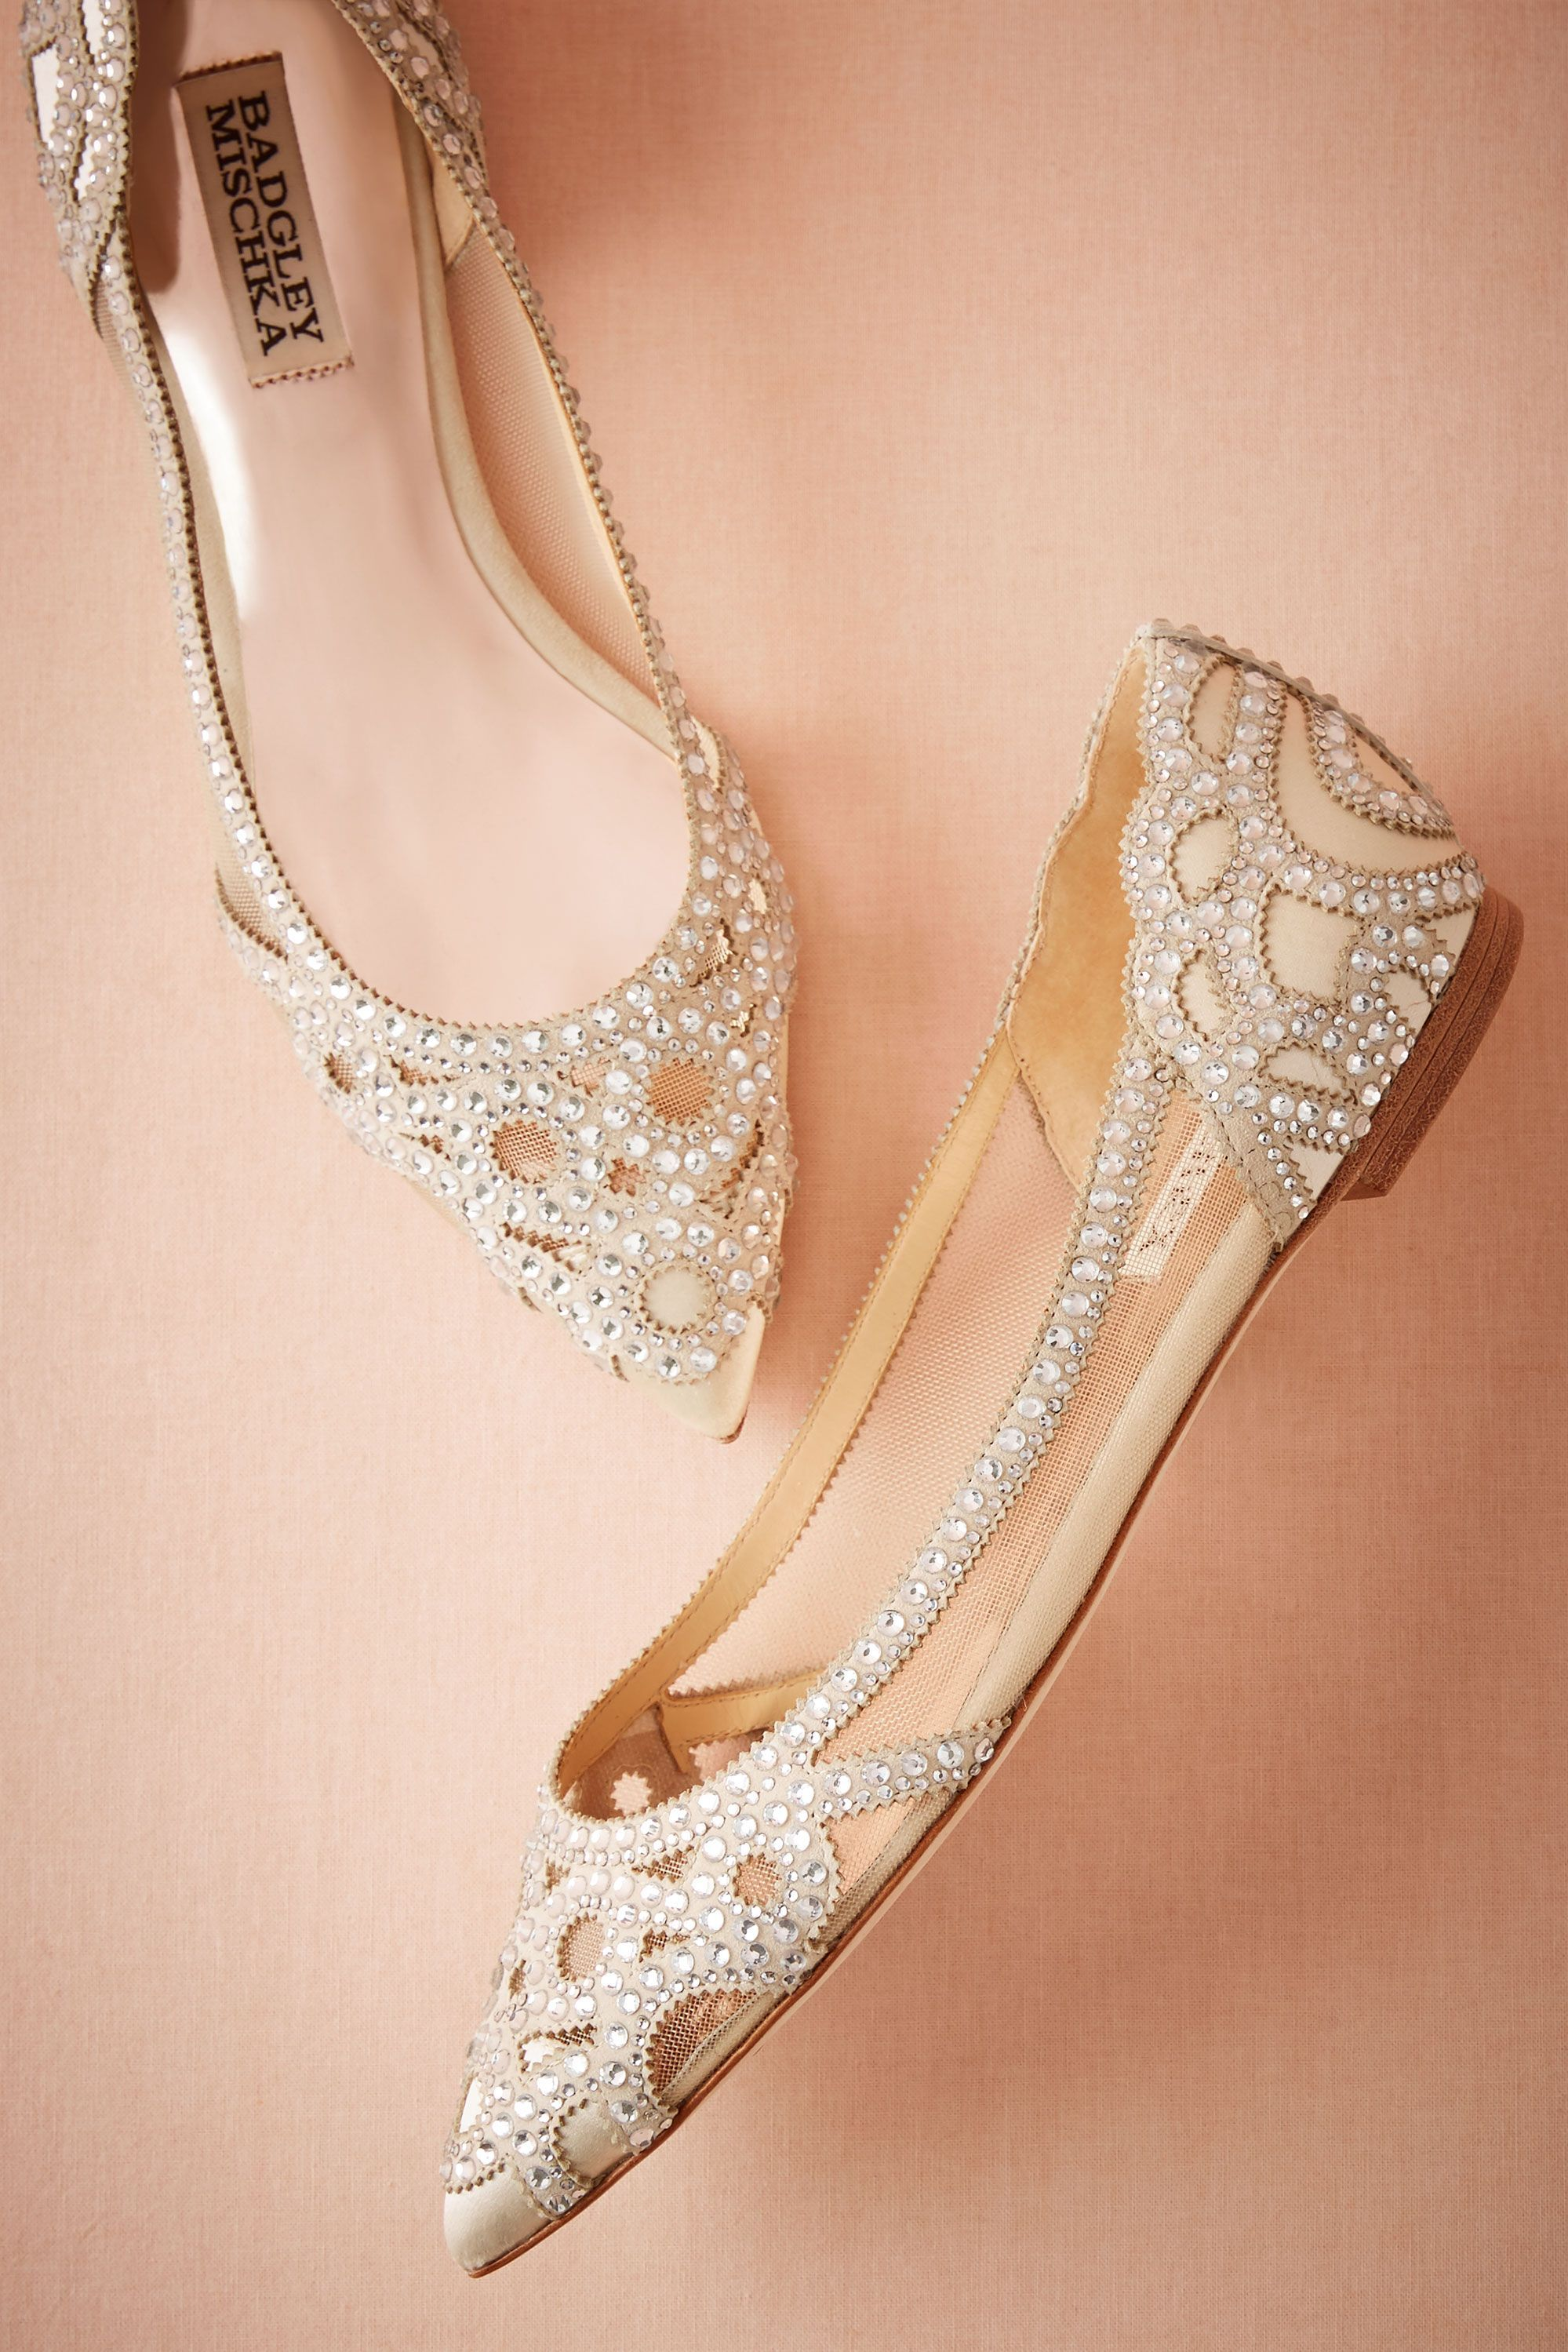 Badgley Mischka Gigi Flats Bridal Sandals Wedding Shoes